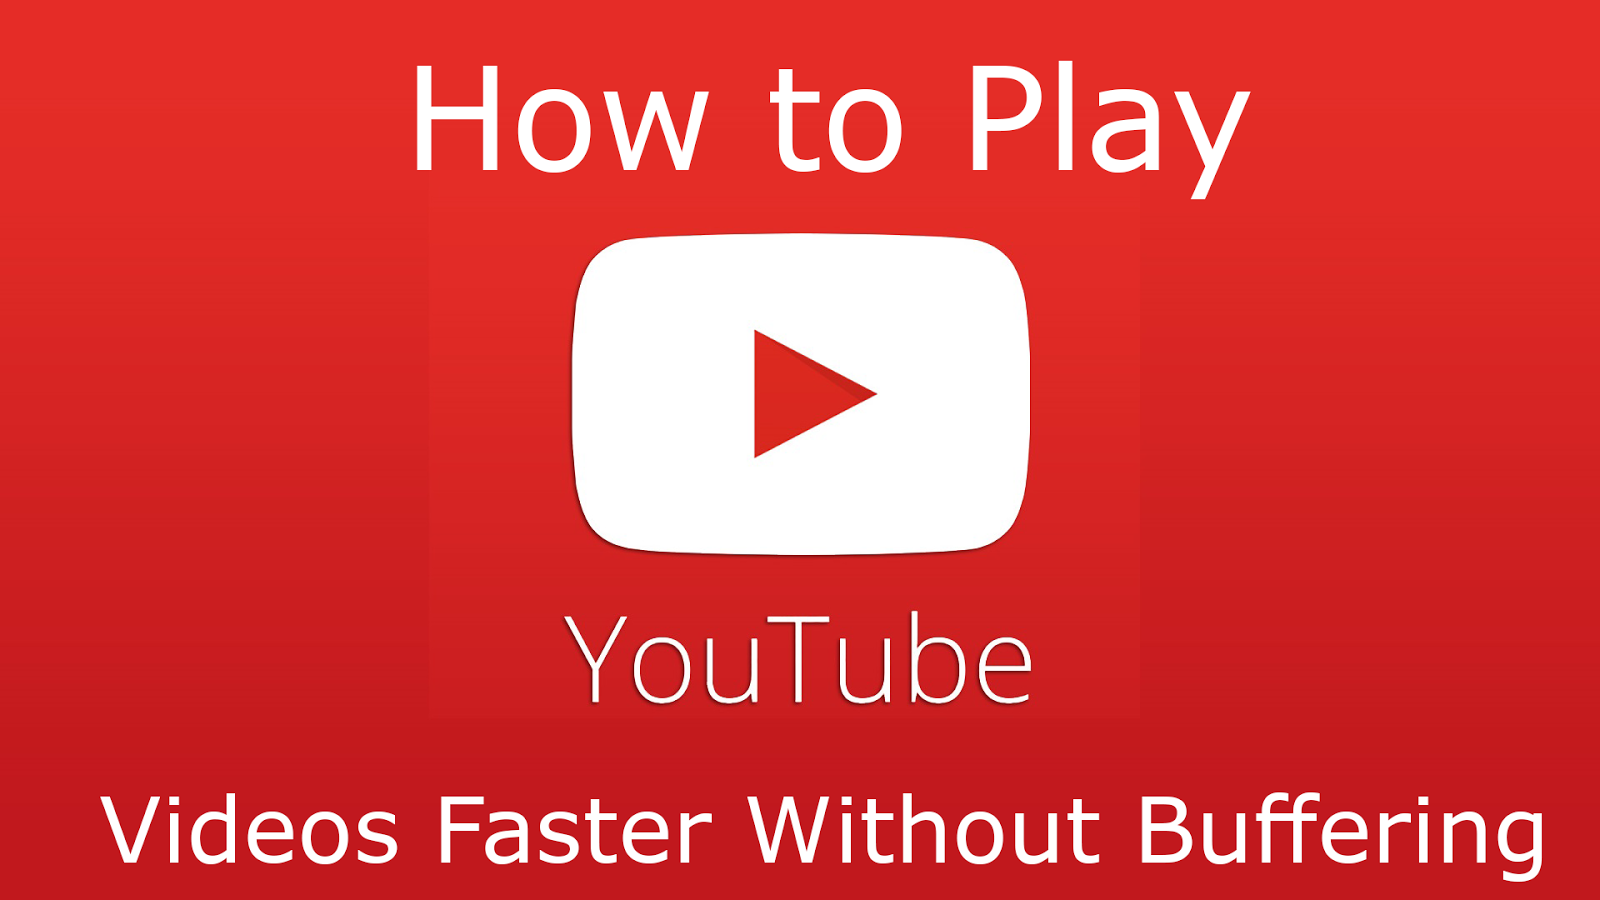 Playyoutubefaster How To Play Youtube Videos How To Embed Youtube Video In  Keynote? Videodia